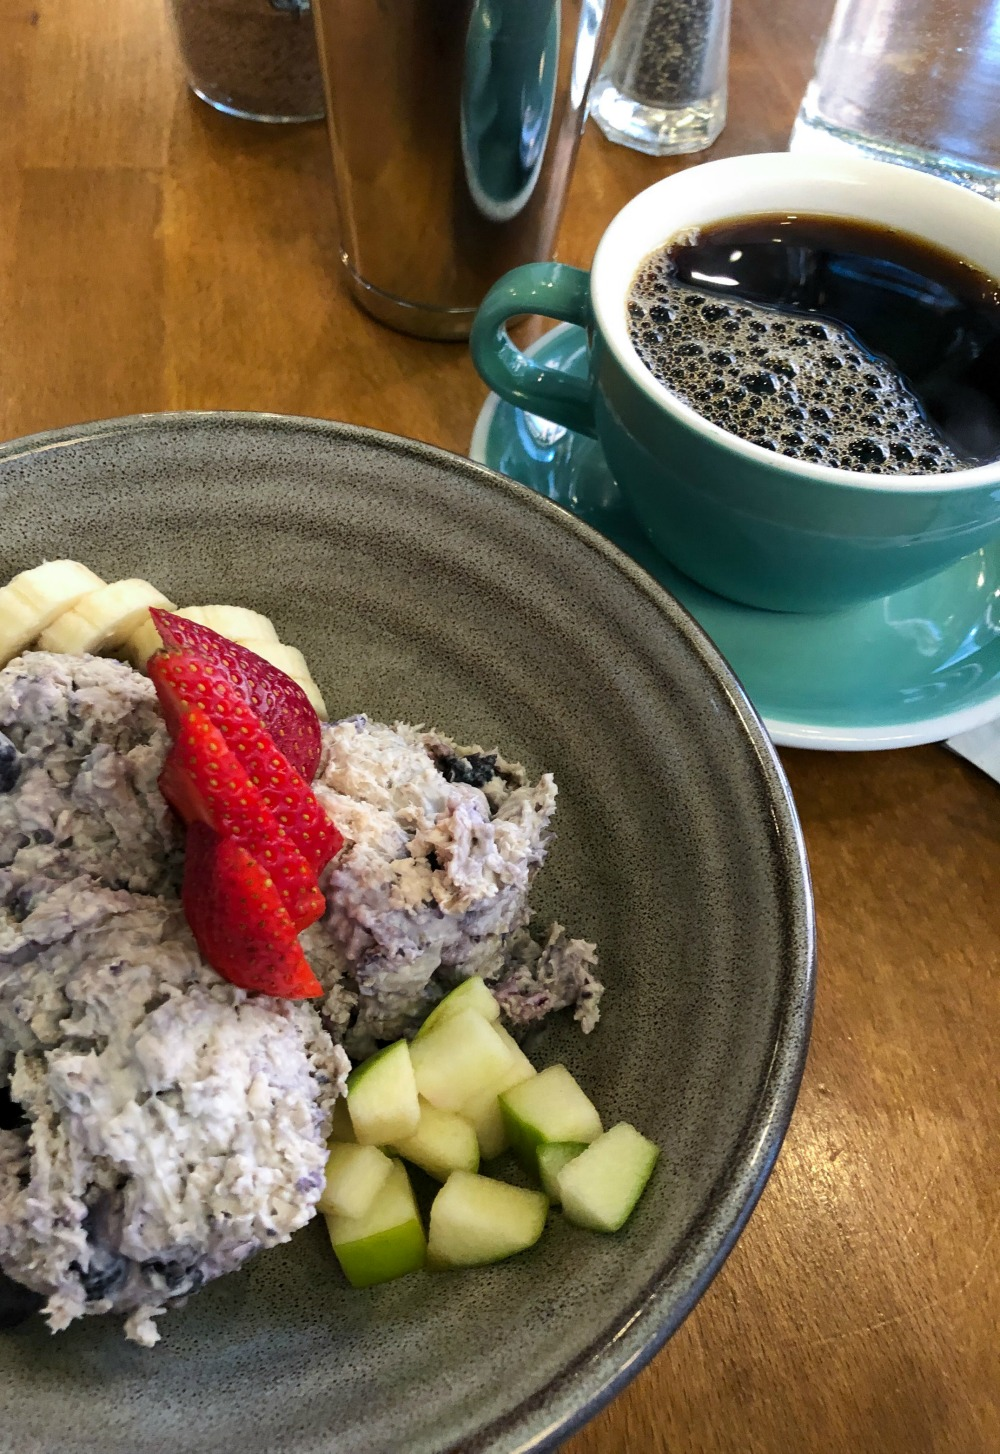 Affordable New York City Travel Guide I Overnight Oats at Citizens of Chelsea #Travel #TravelGuide #NYC #VeganEats